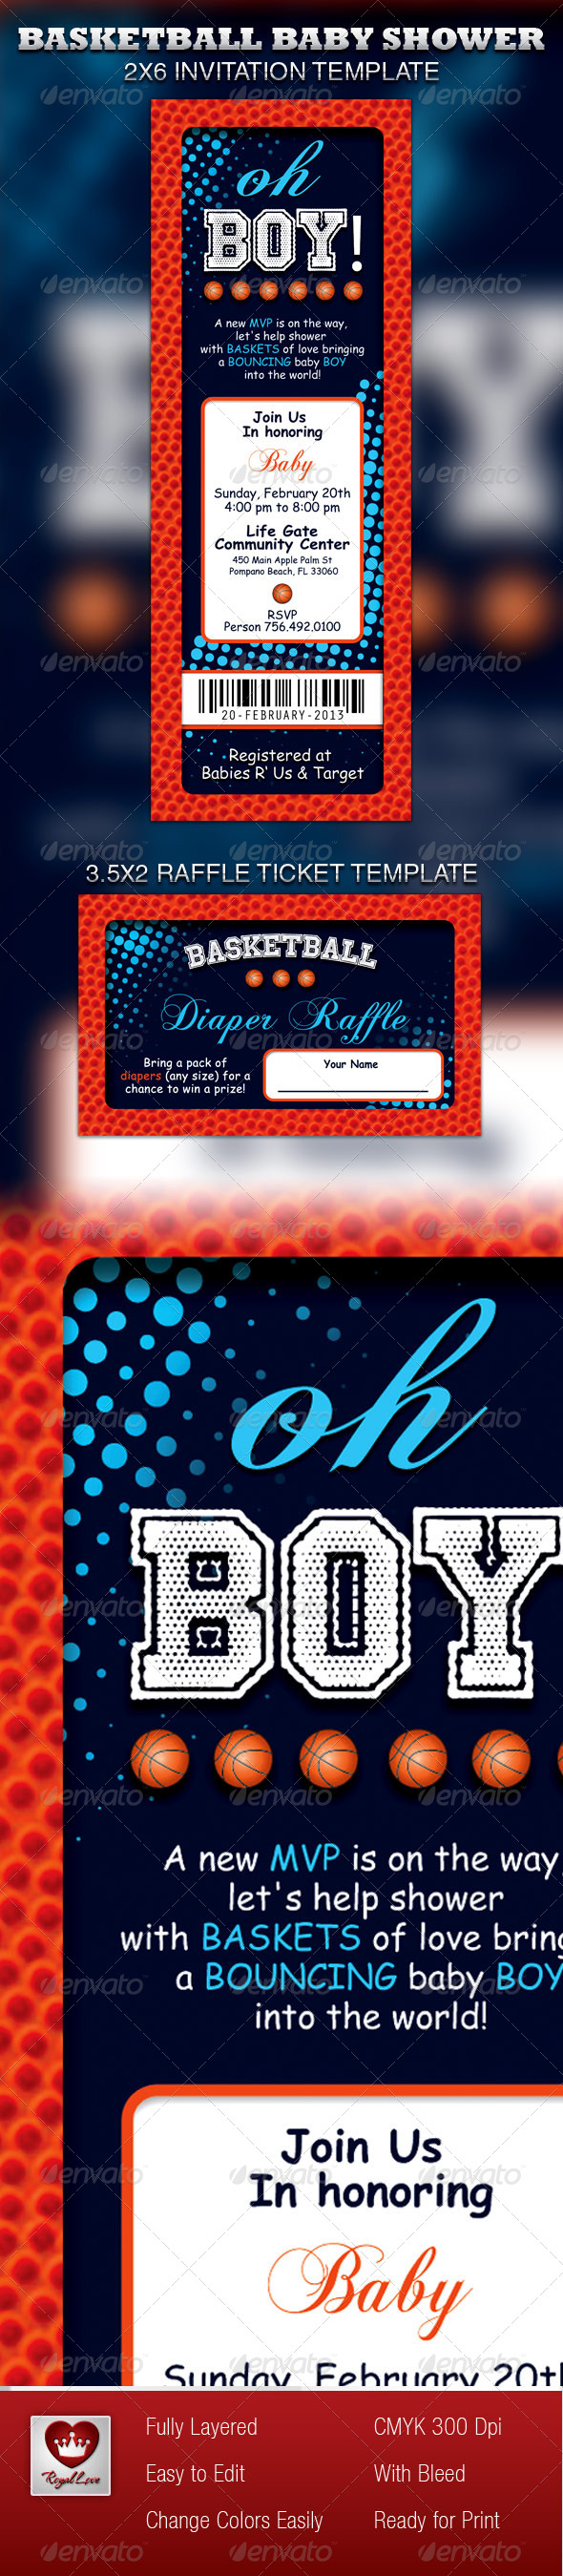 GraphicRiver Basketball Baby Shower Invitation & Raffle Ticket 4047992